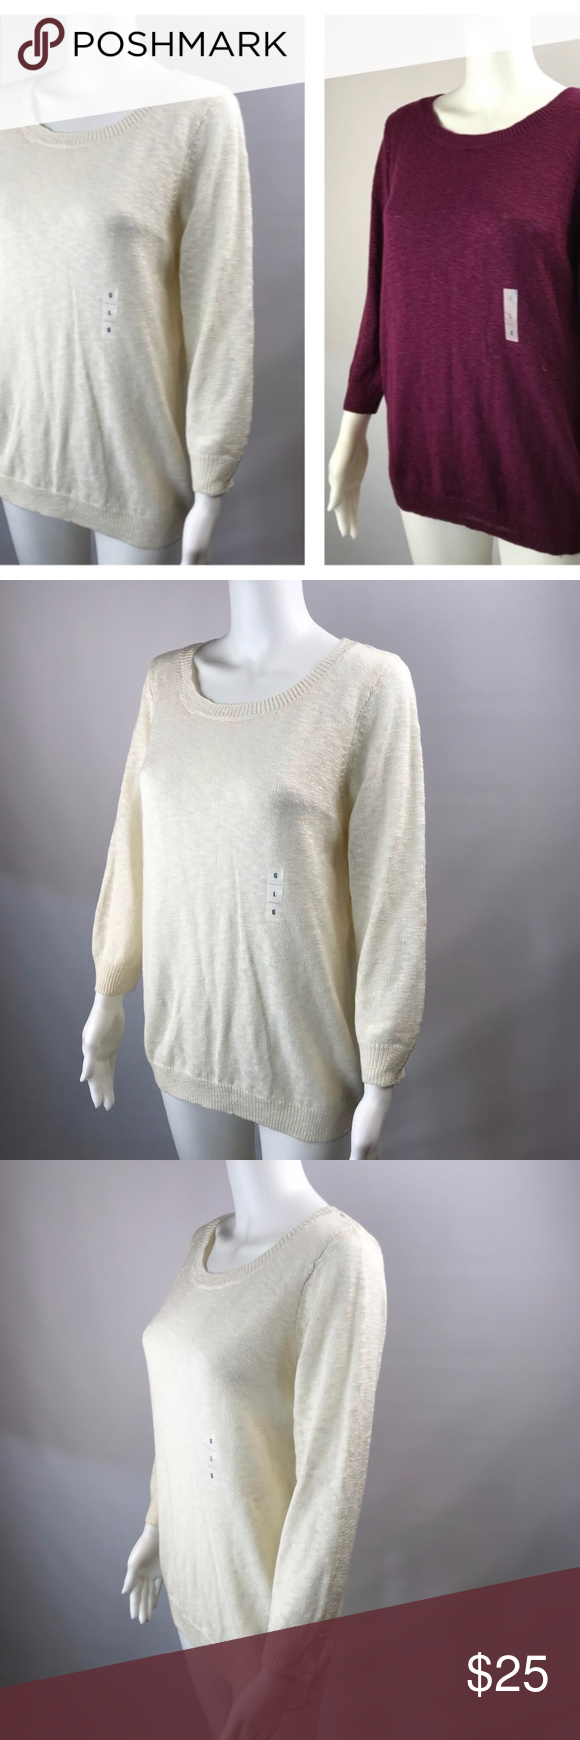 Old Navy LARGE Crew Neck Sweaters Set of 2 Old Navy LARGE Crew ...